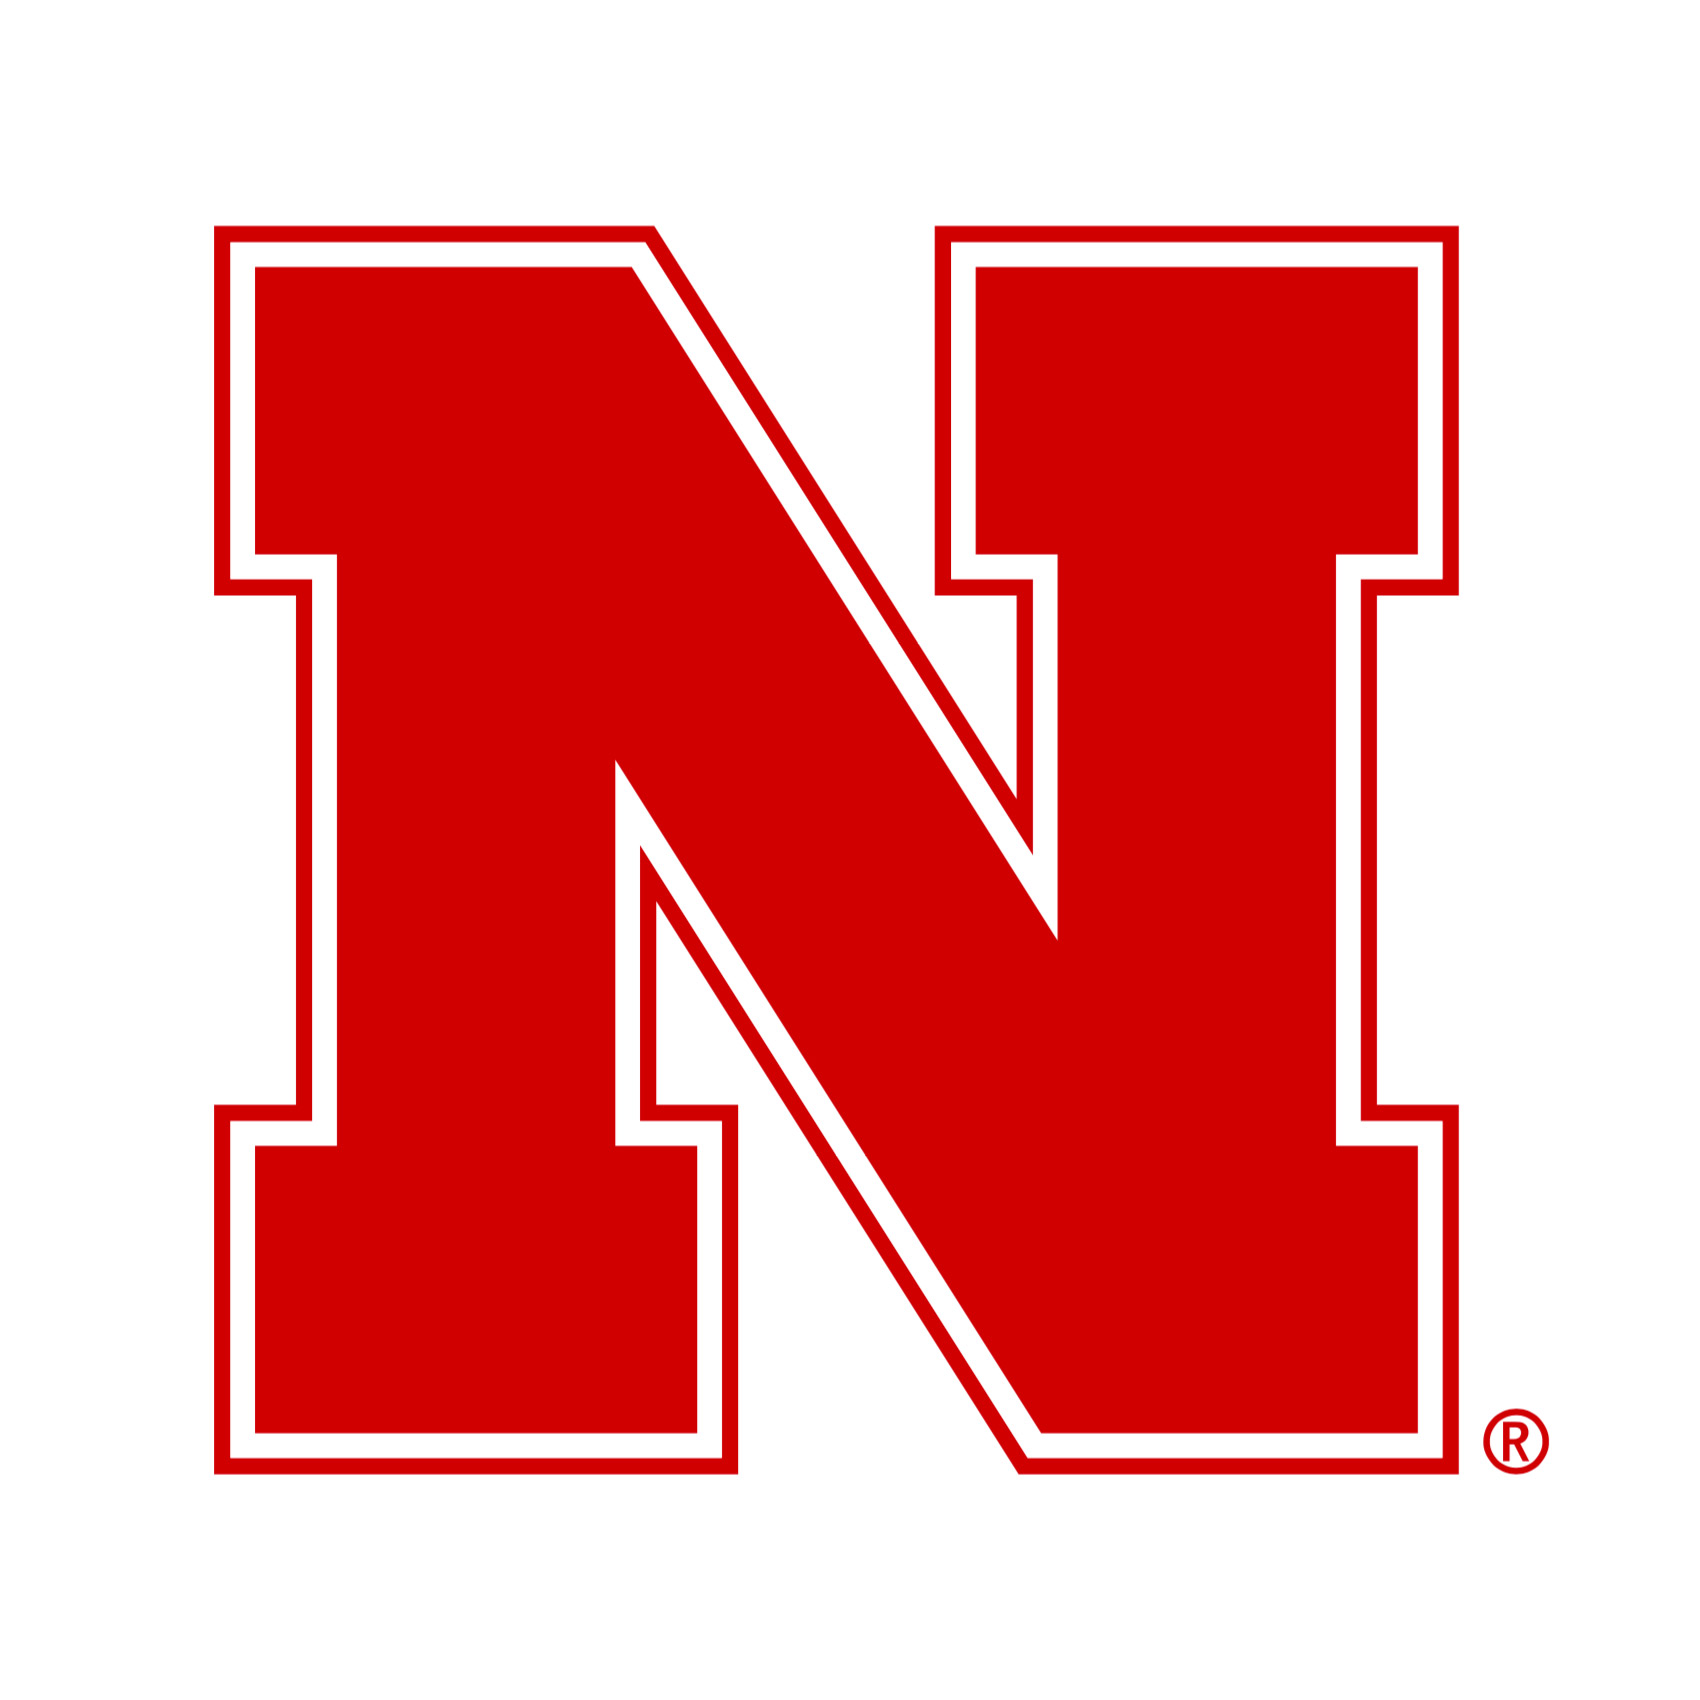 nebraska-n - Clutch Up